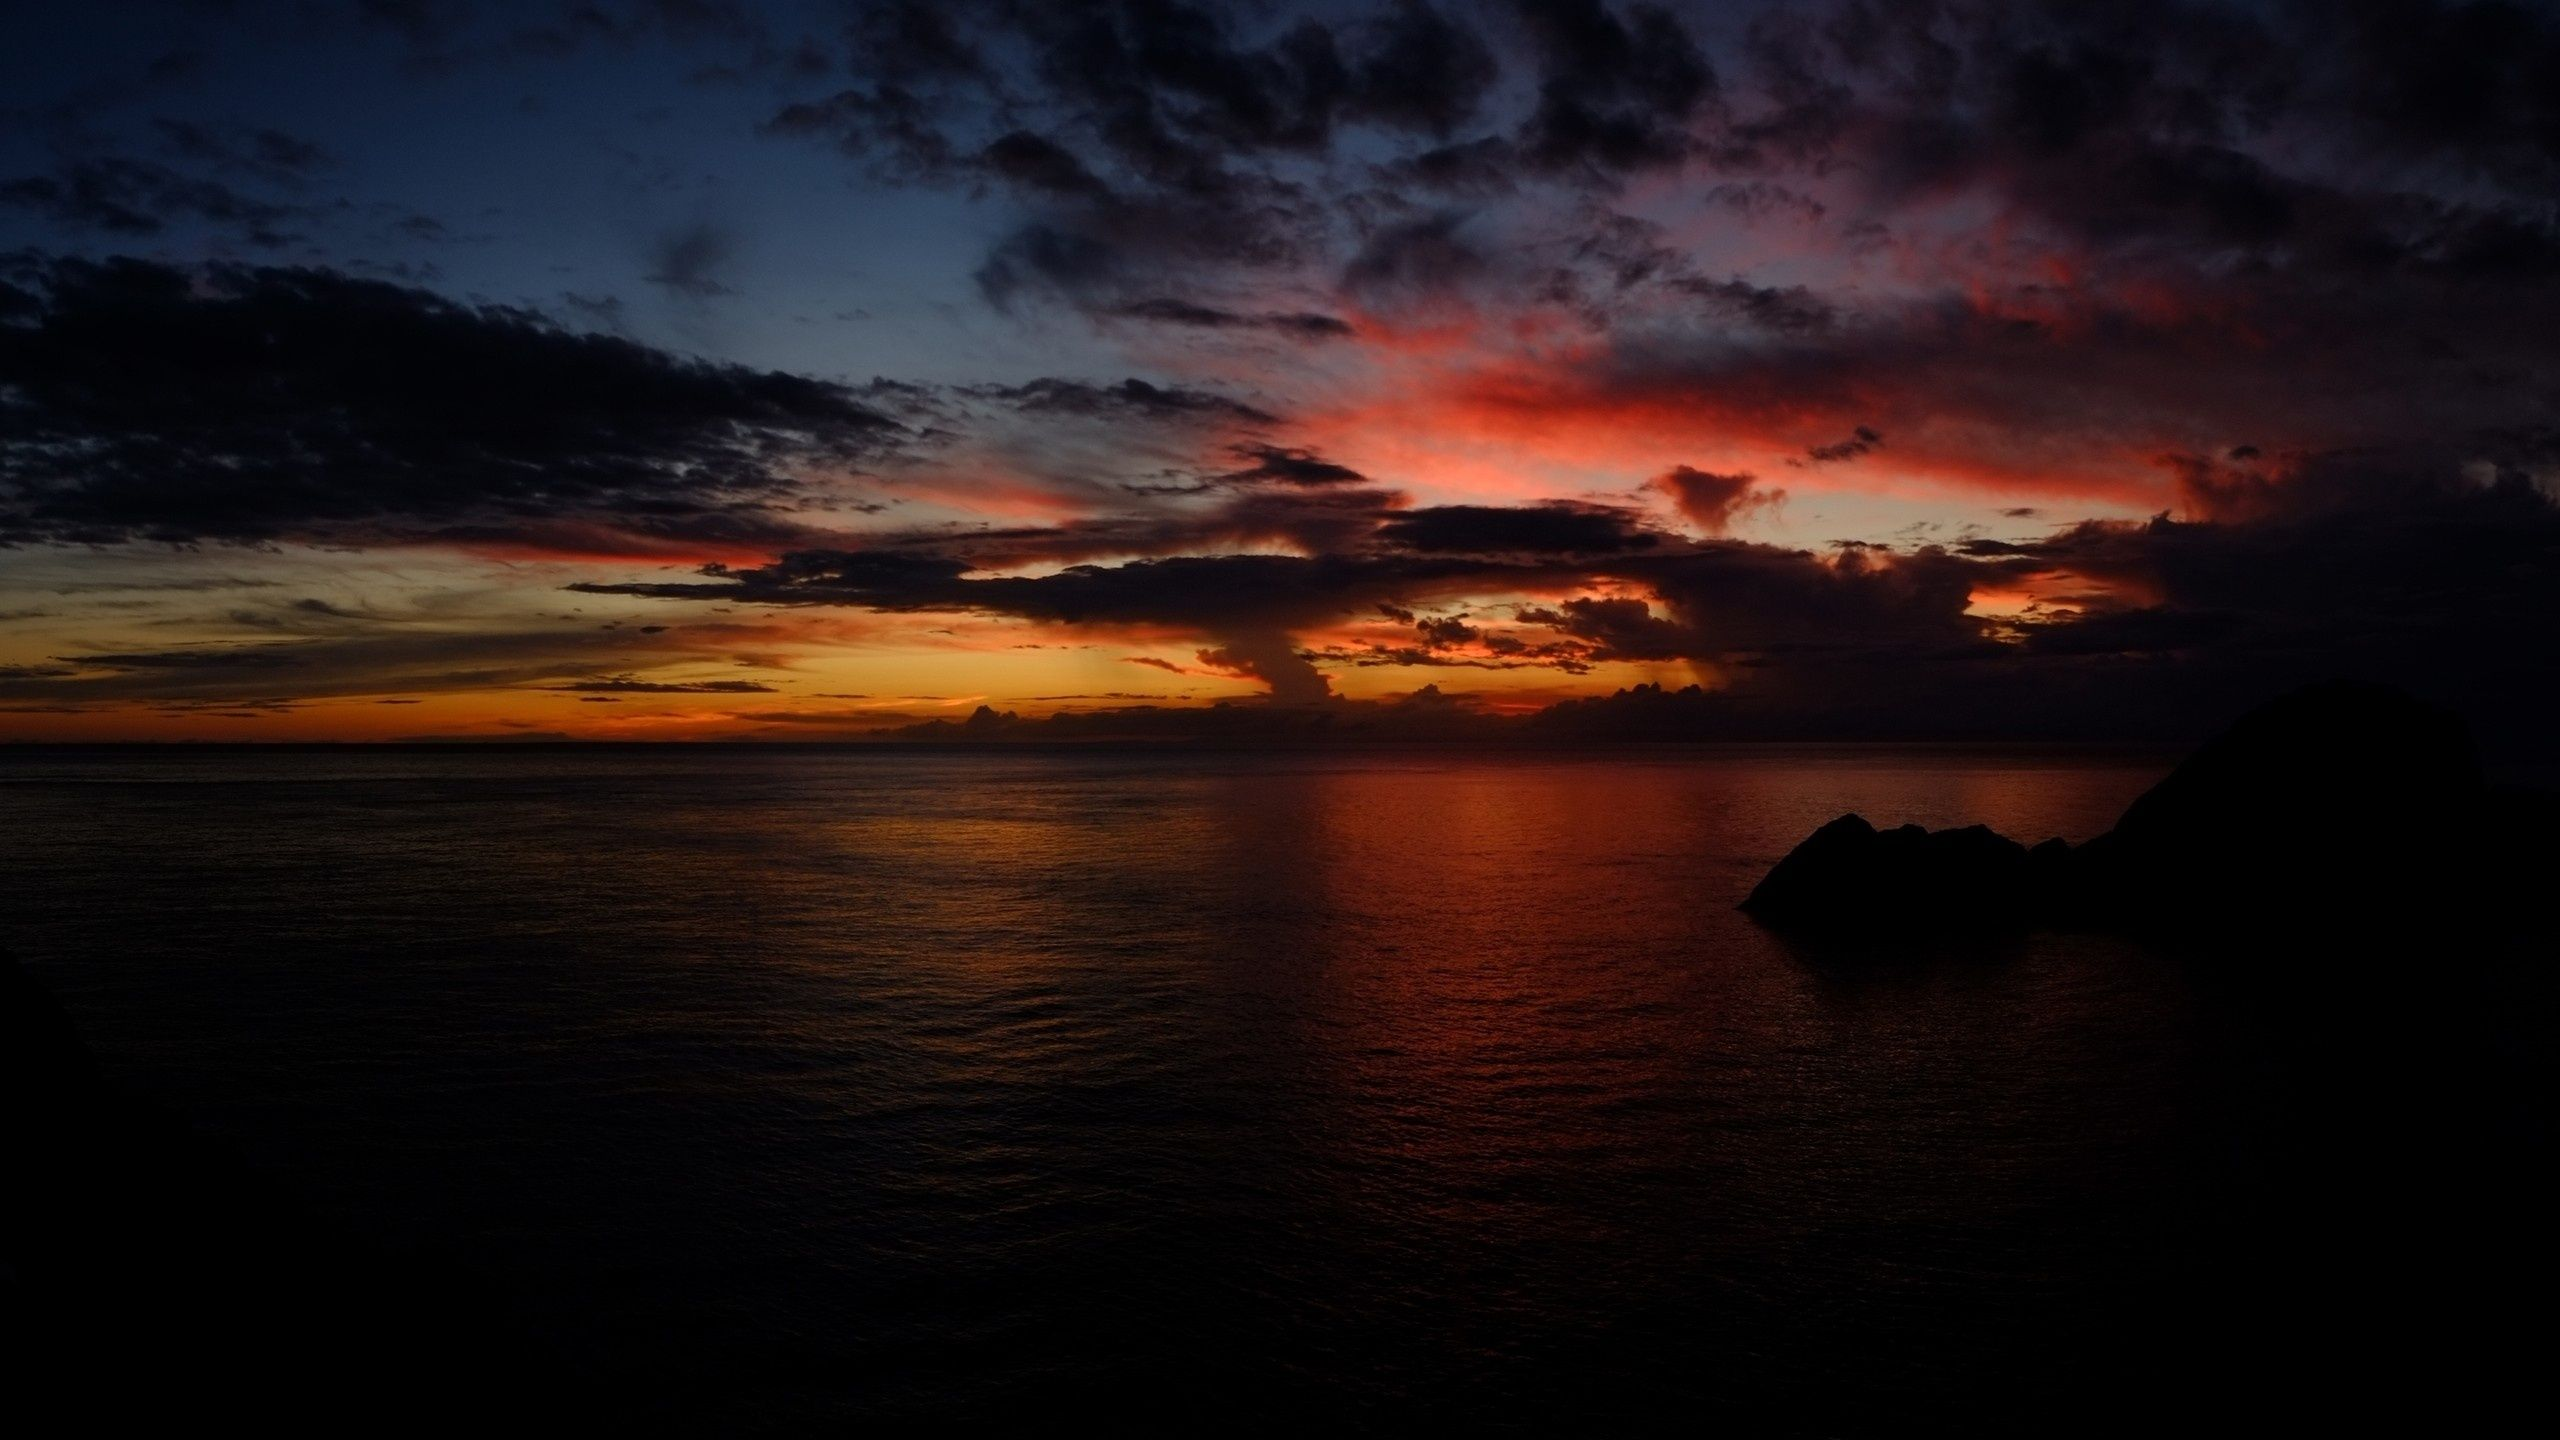 Dark Sunset Hd 2560x1440 Sunset Clouds Dark Ocean Desktop Pc And Mac Wallpaper Dark Landscape Ocean Wallpaper Sunset Landscape